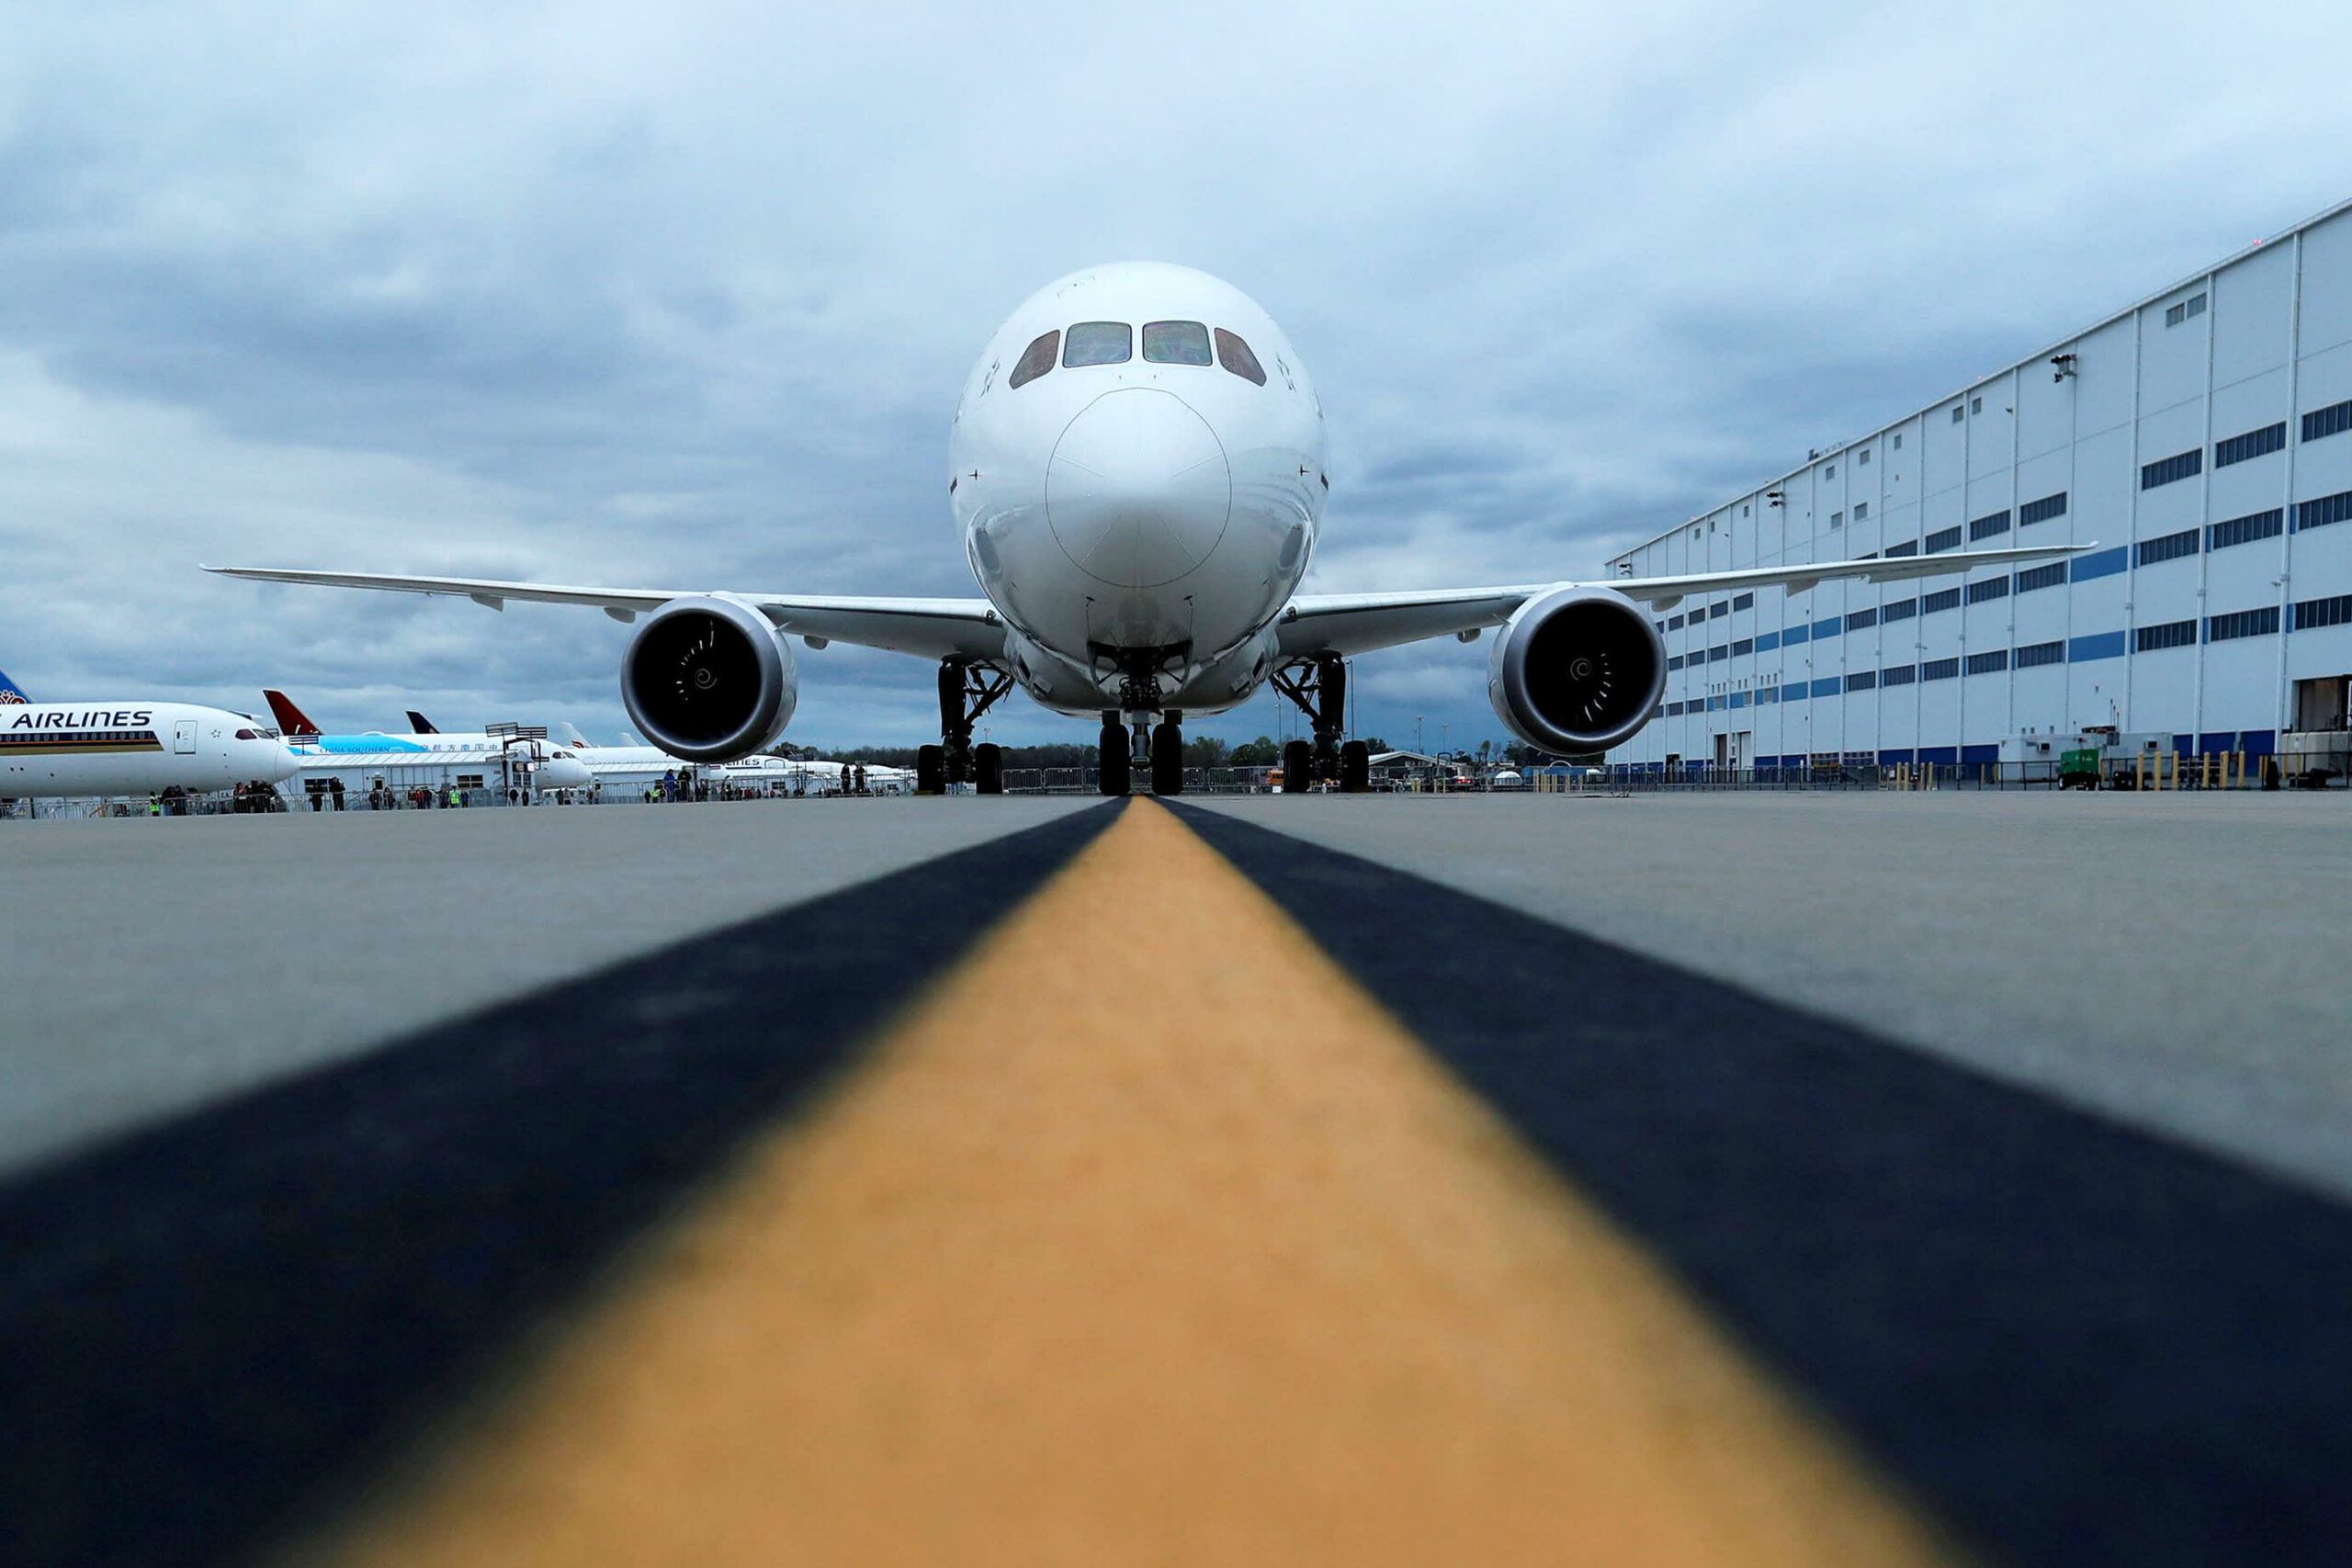 Boeing orders proceed to outpace cancellations, Dreamliner deliveries nonetheless paused